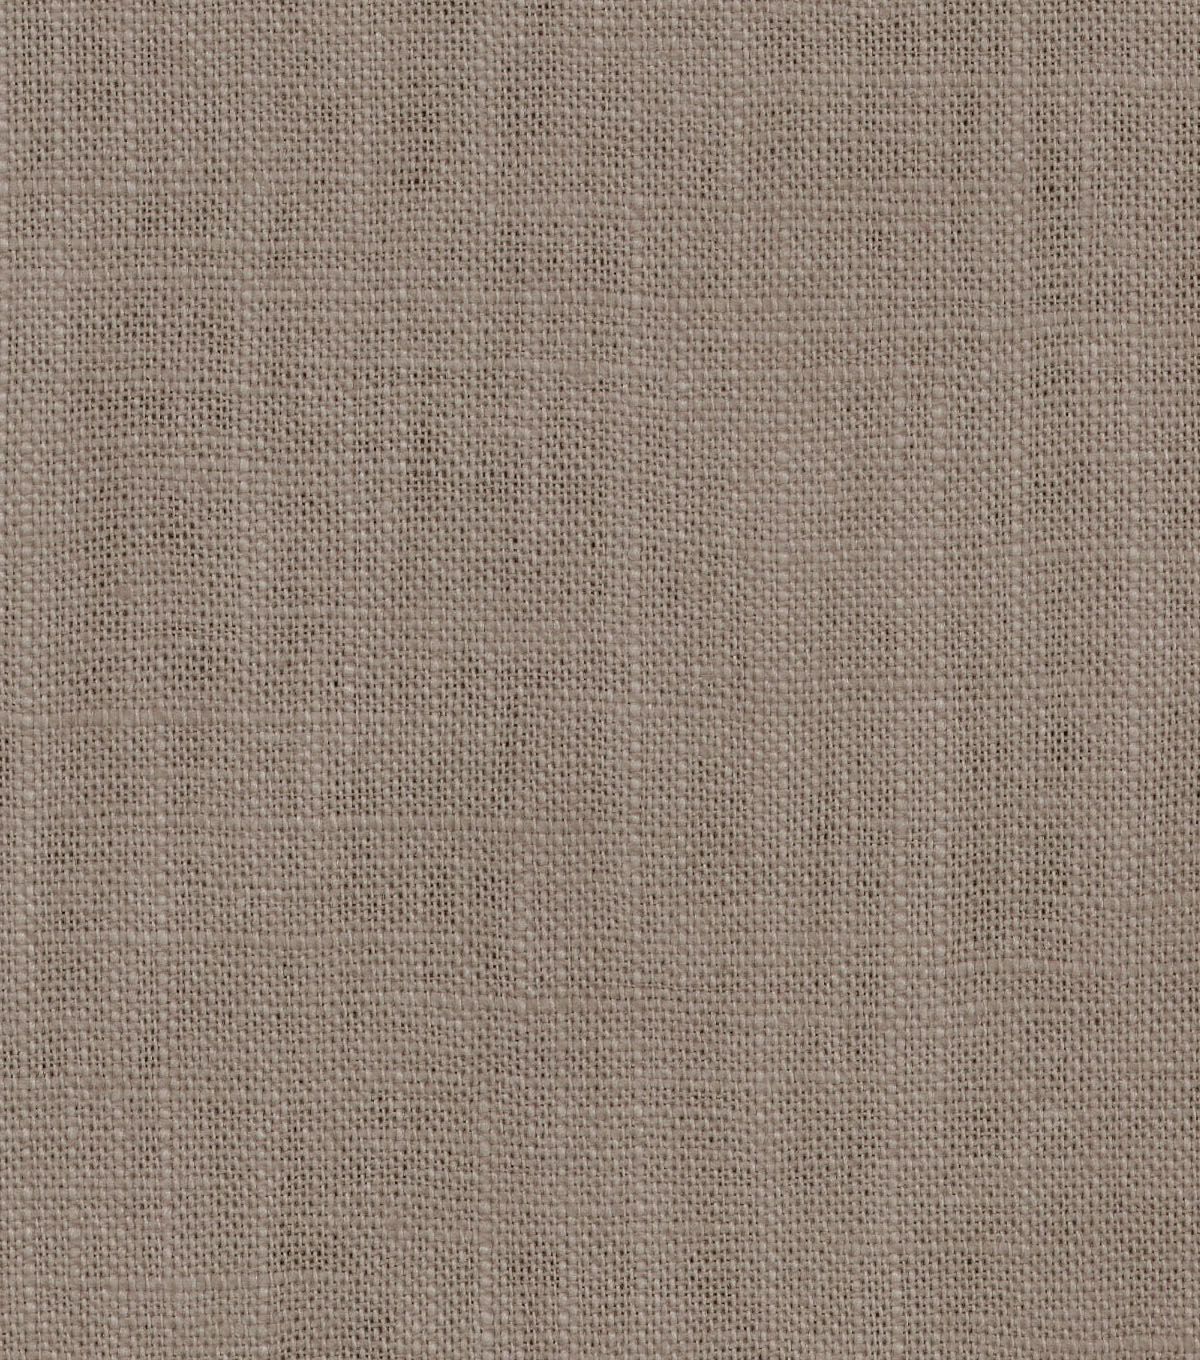 P/K Lifestyles Multi-Purpose Decor Fabric 54\u0027\u0027-Porcini Shoreline